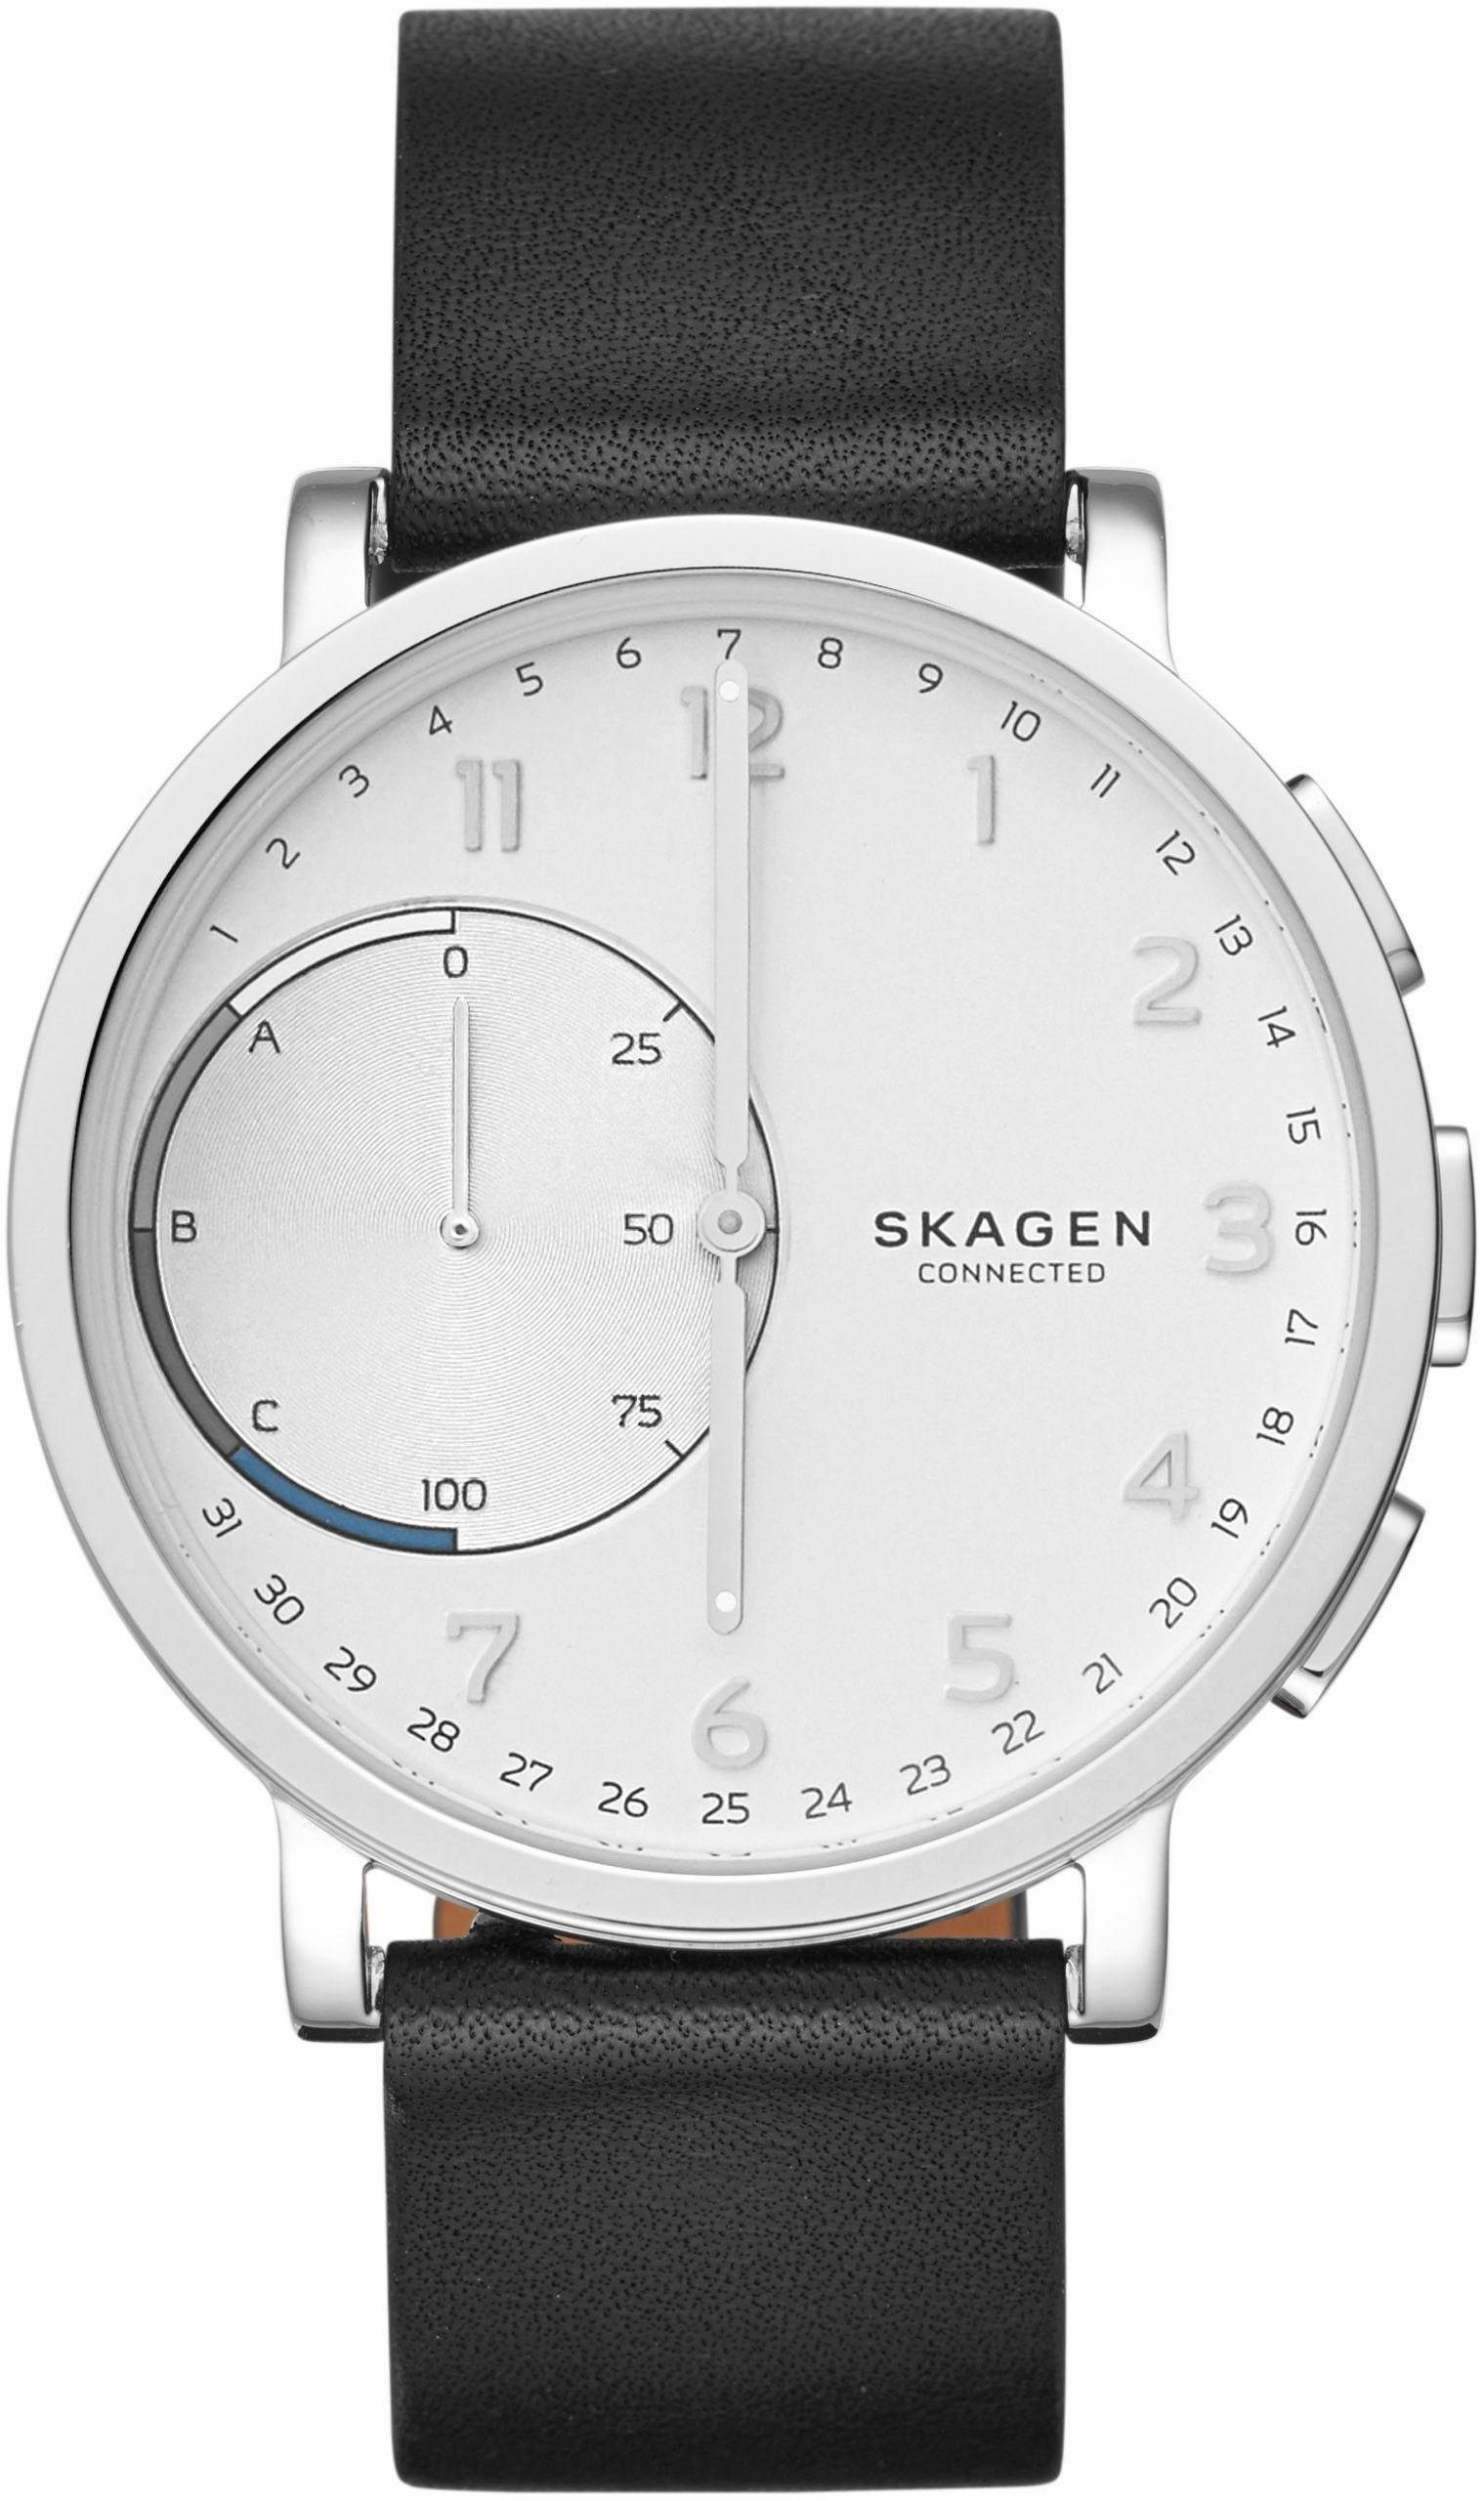 SKAGEN CONNECTED Quarzuhr »HAGEN CONNECTED, SKT1101«